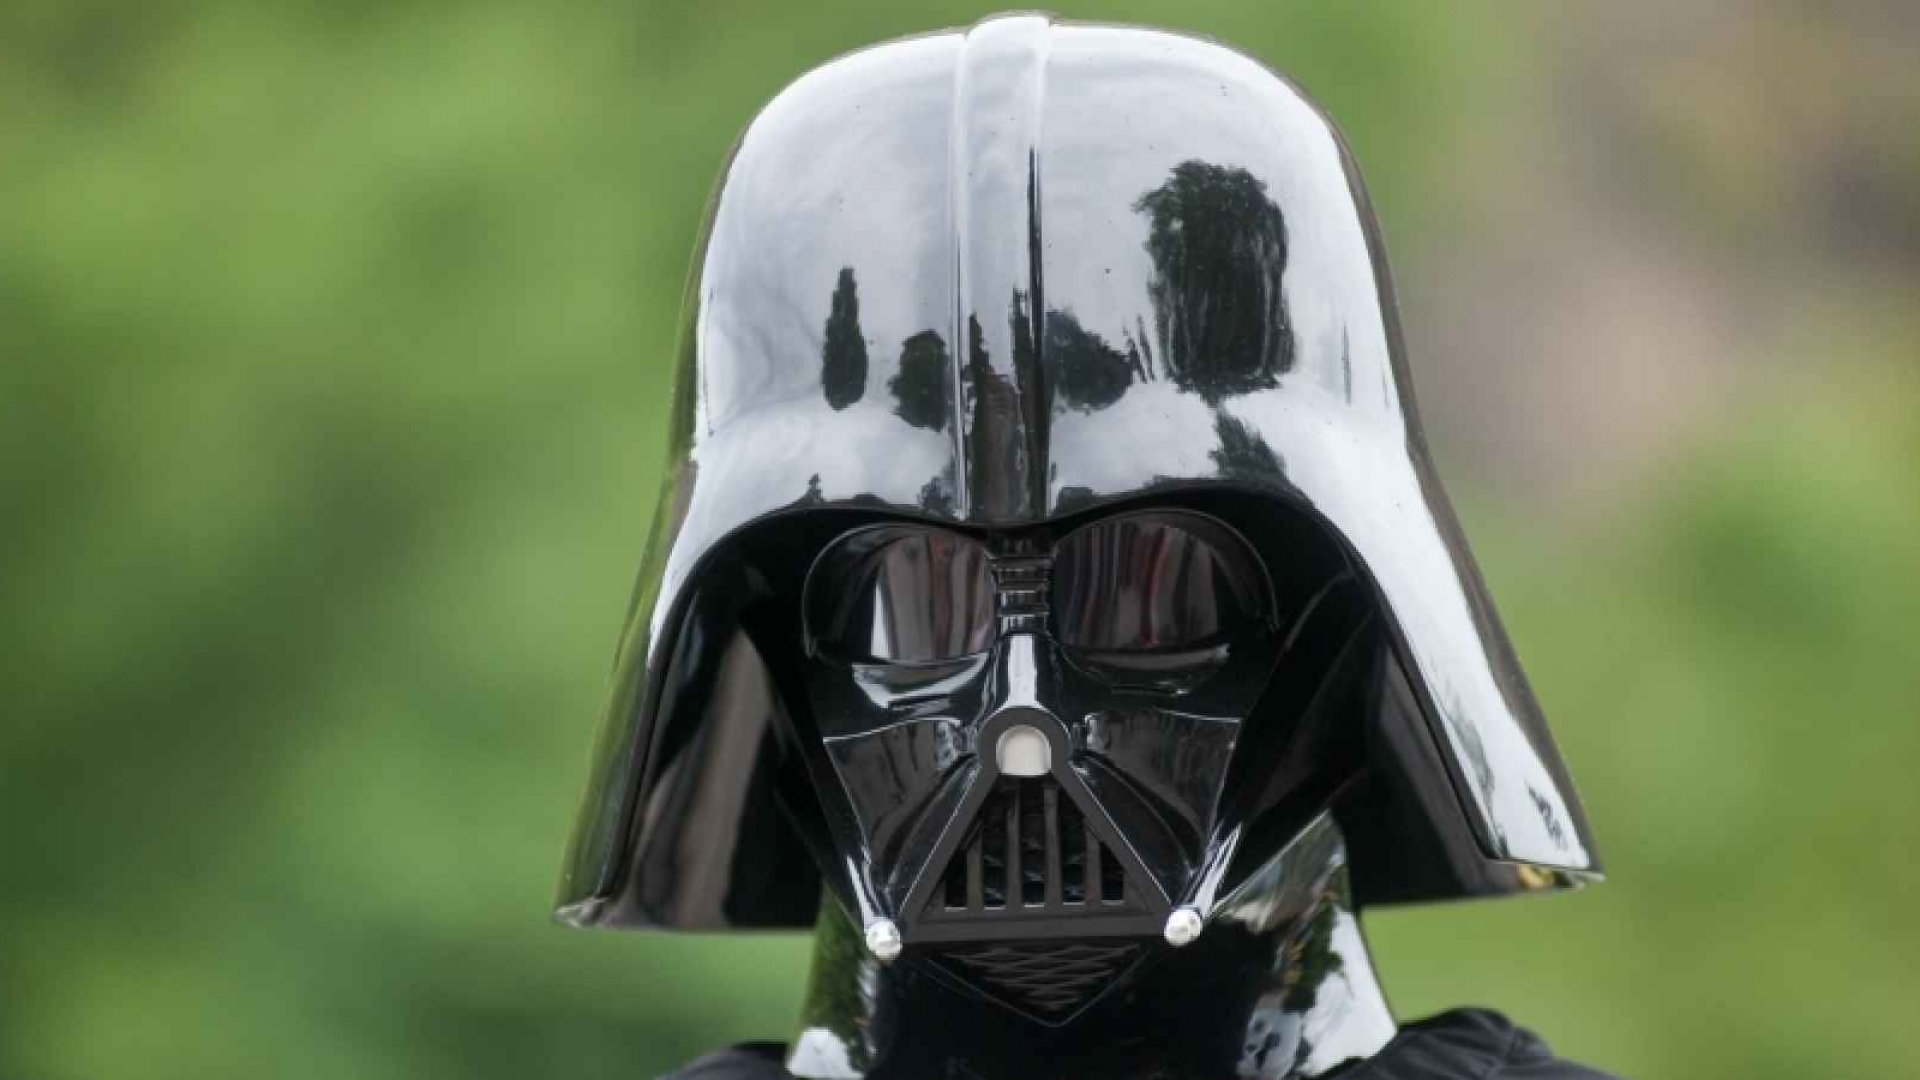 When Darth Vader Is Your Prospect: How to Sell to Forceful People